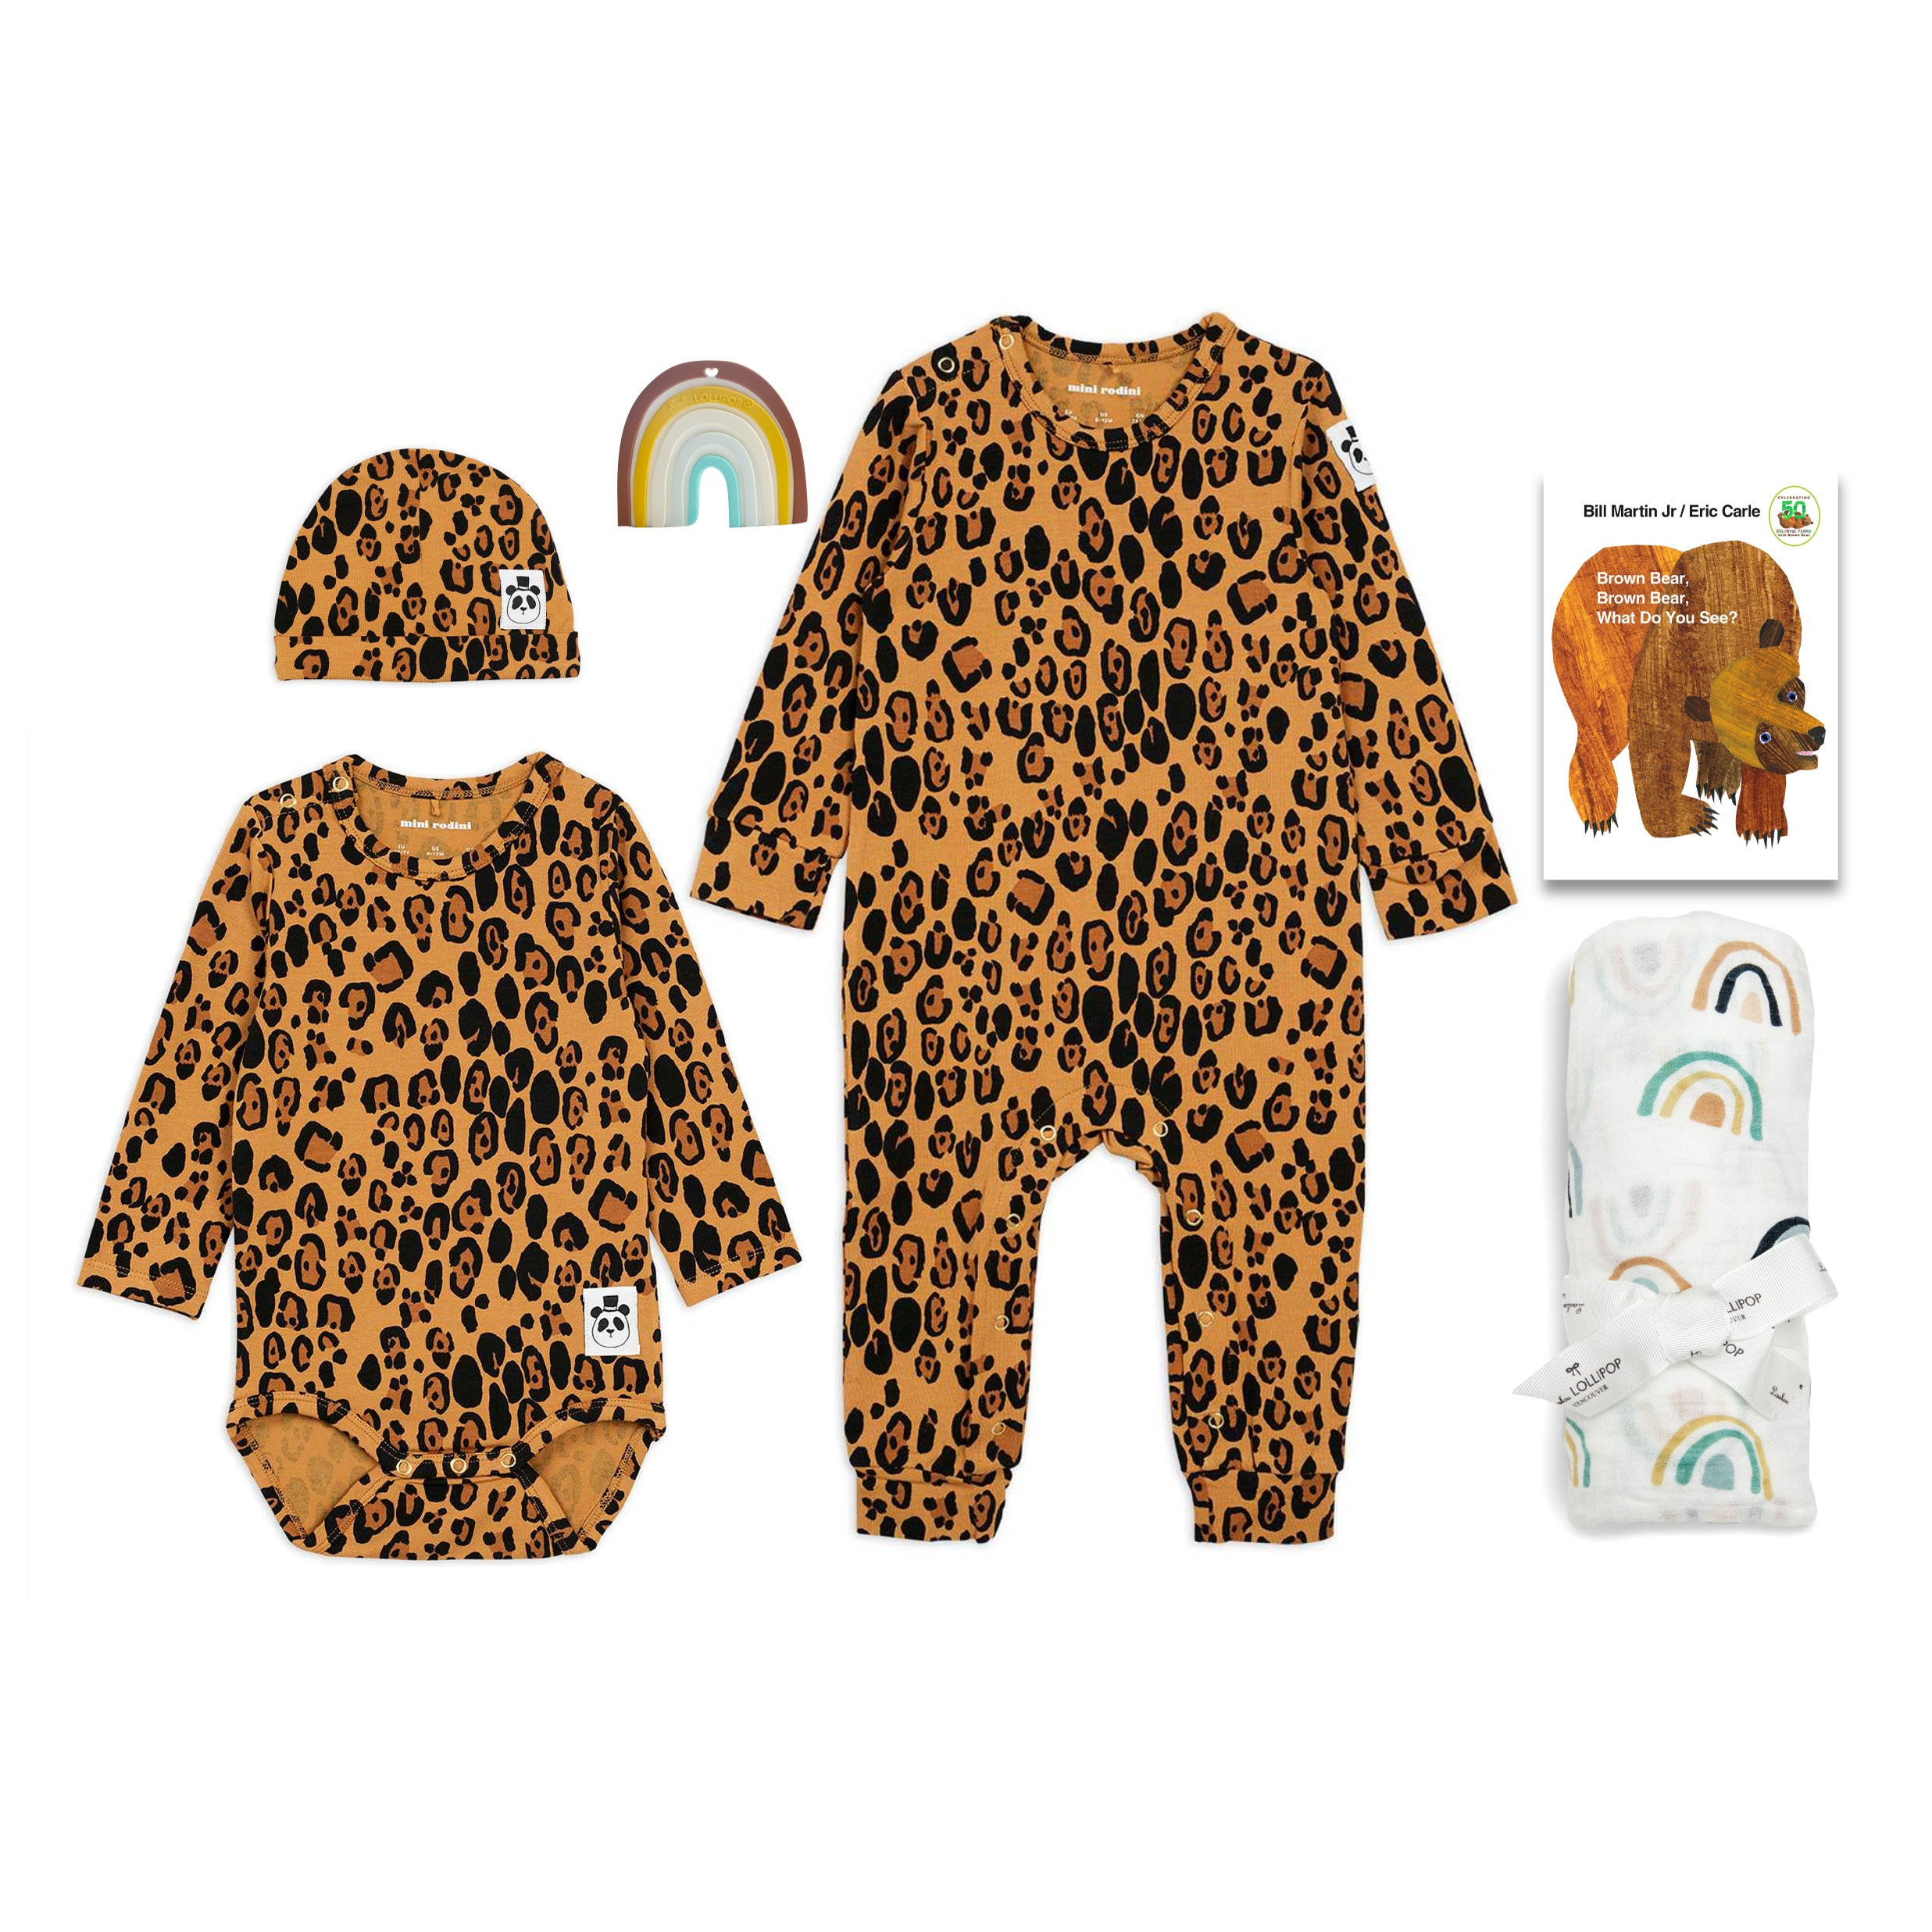 Trendy Baby Gifts featuring Mini Rodini at Bonjour Baby Baskets